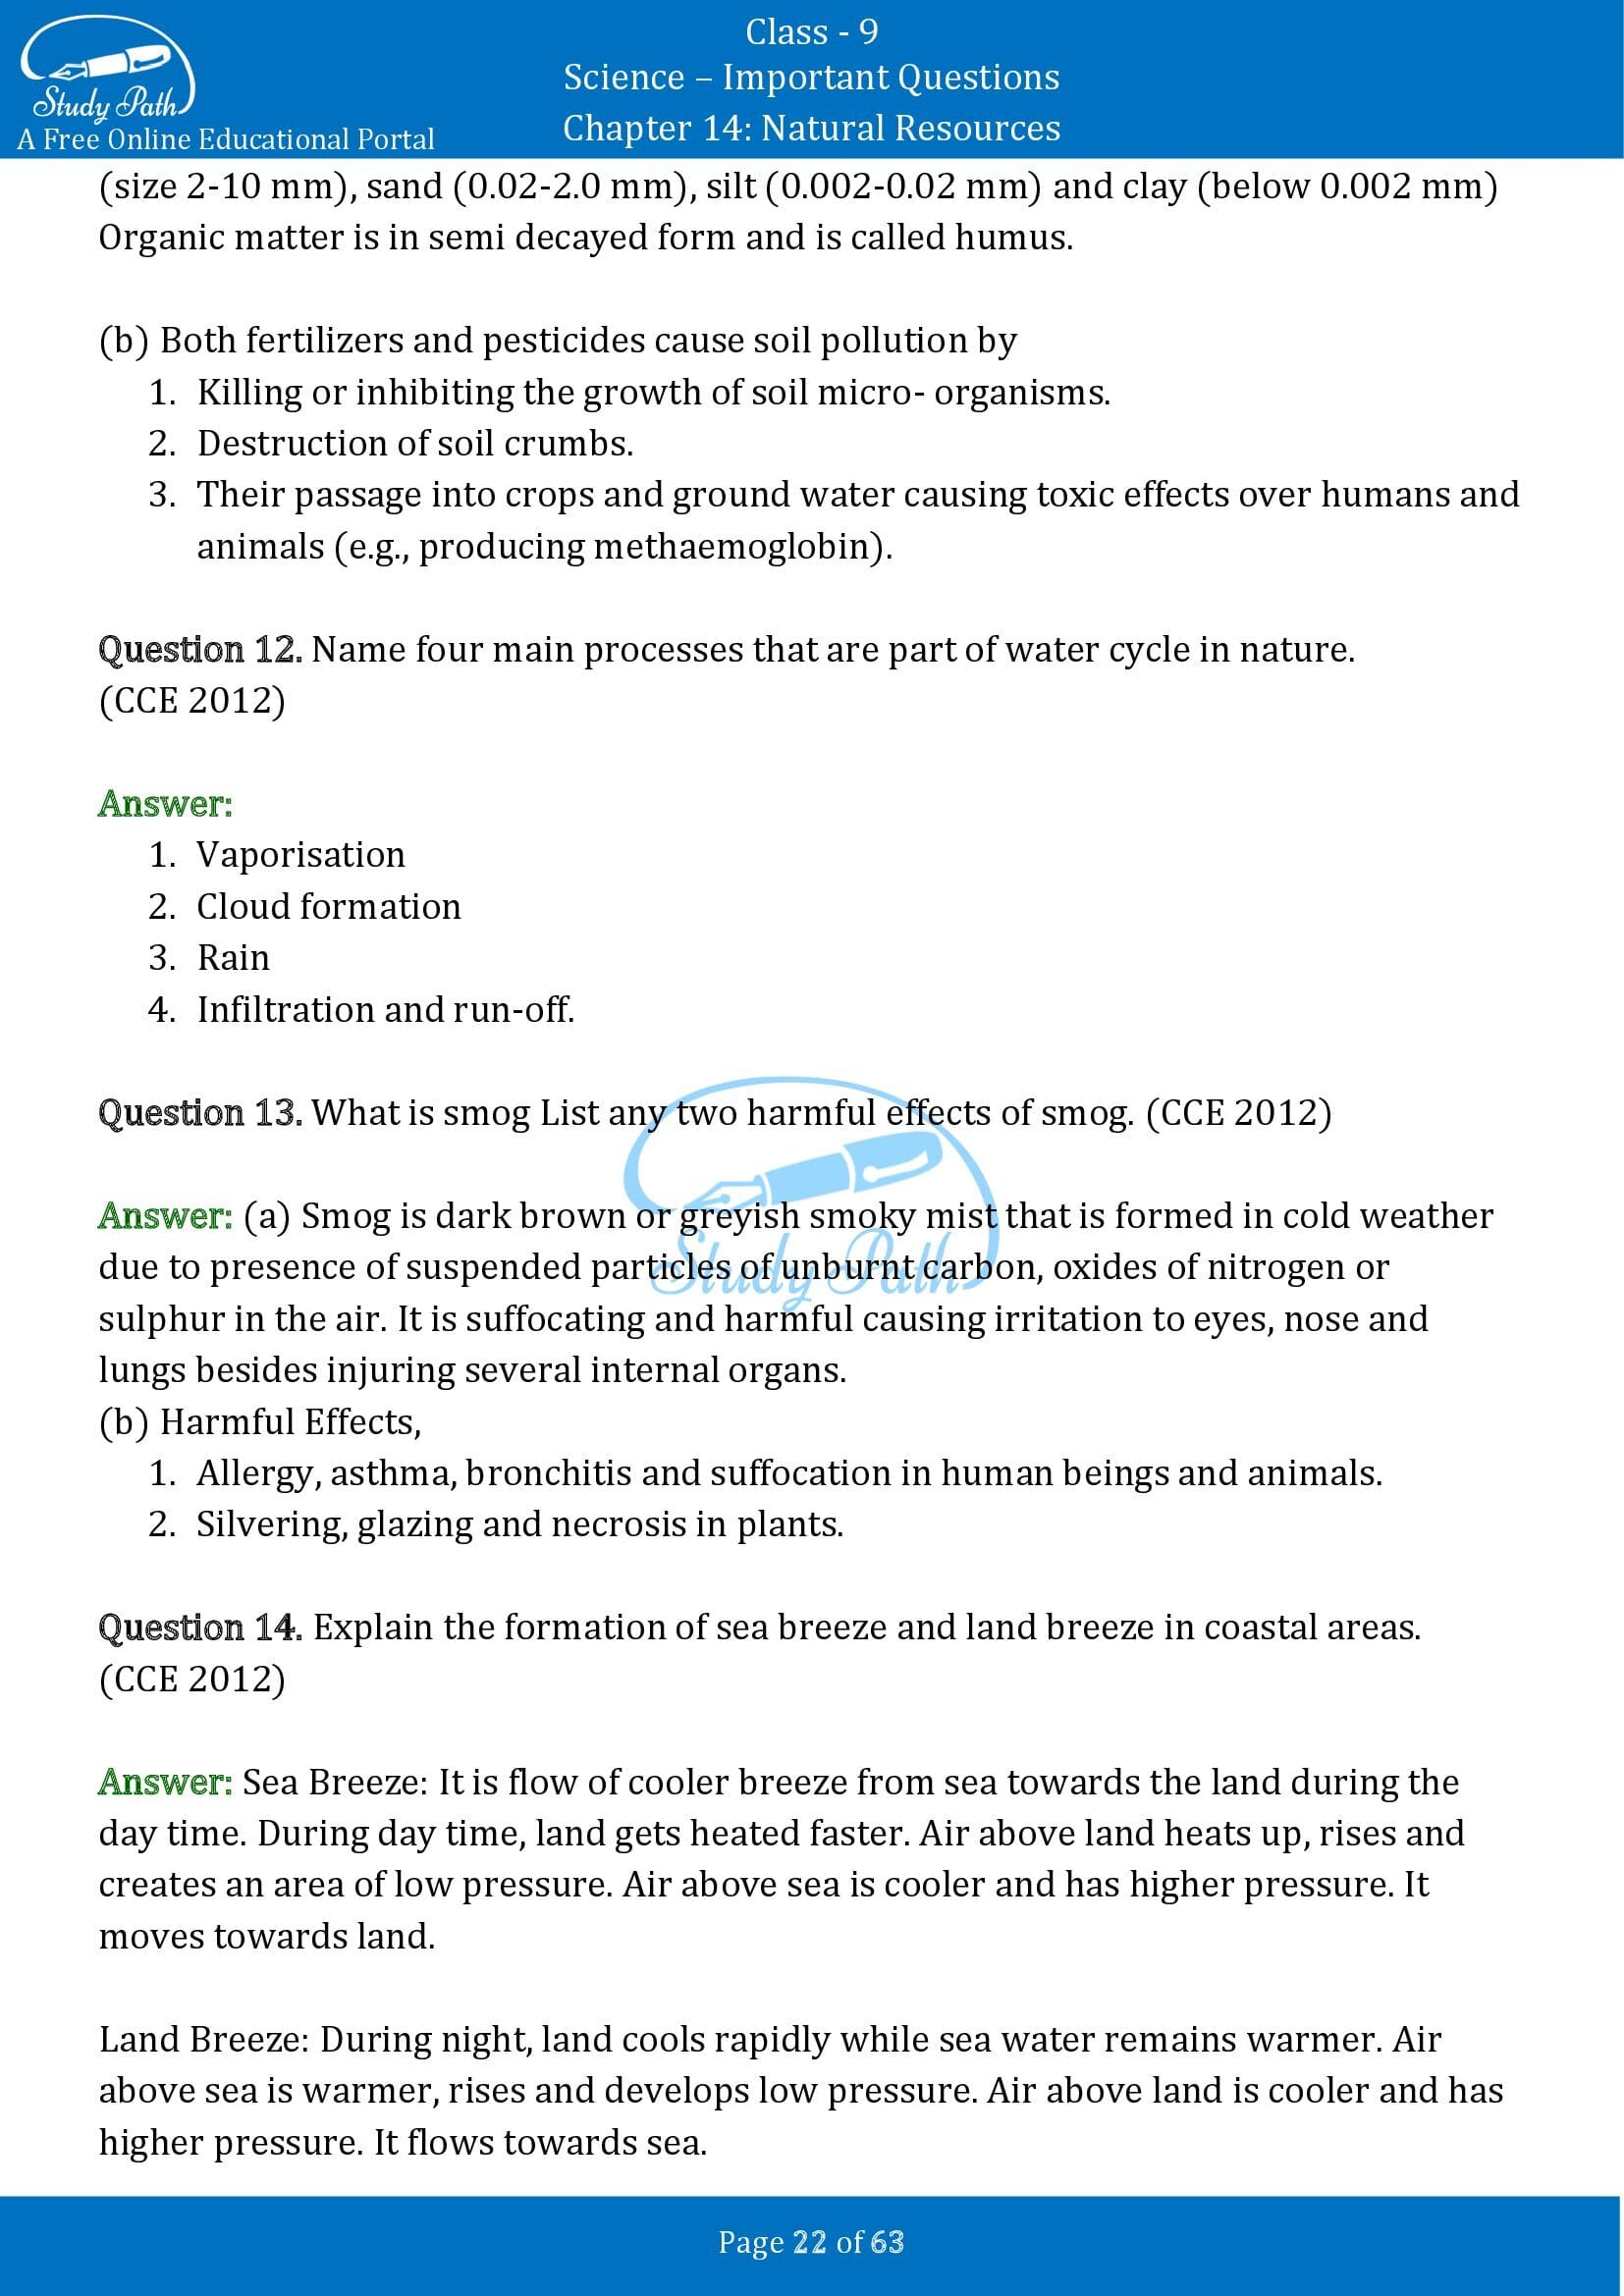 Important Questions for Class 9 Science Chapter 14 Natural Resources 00022